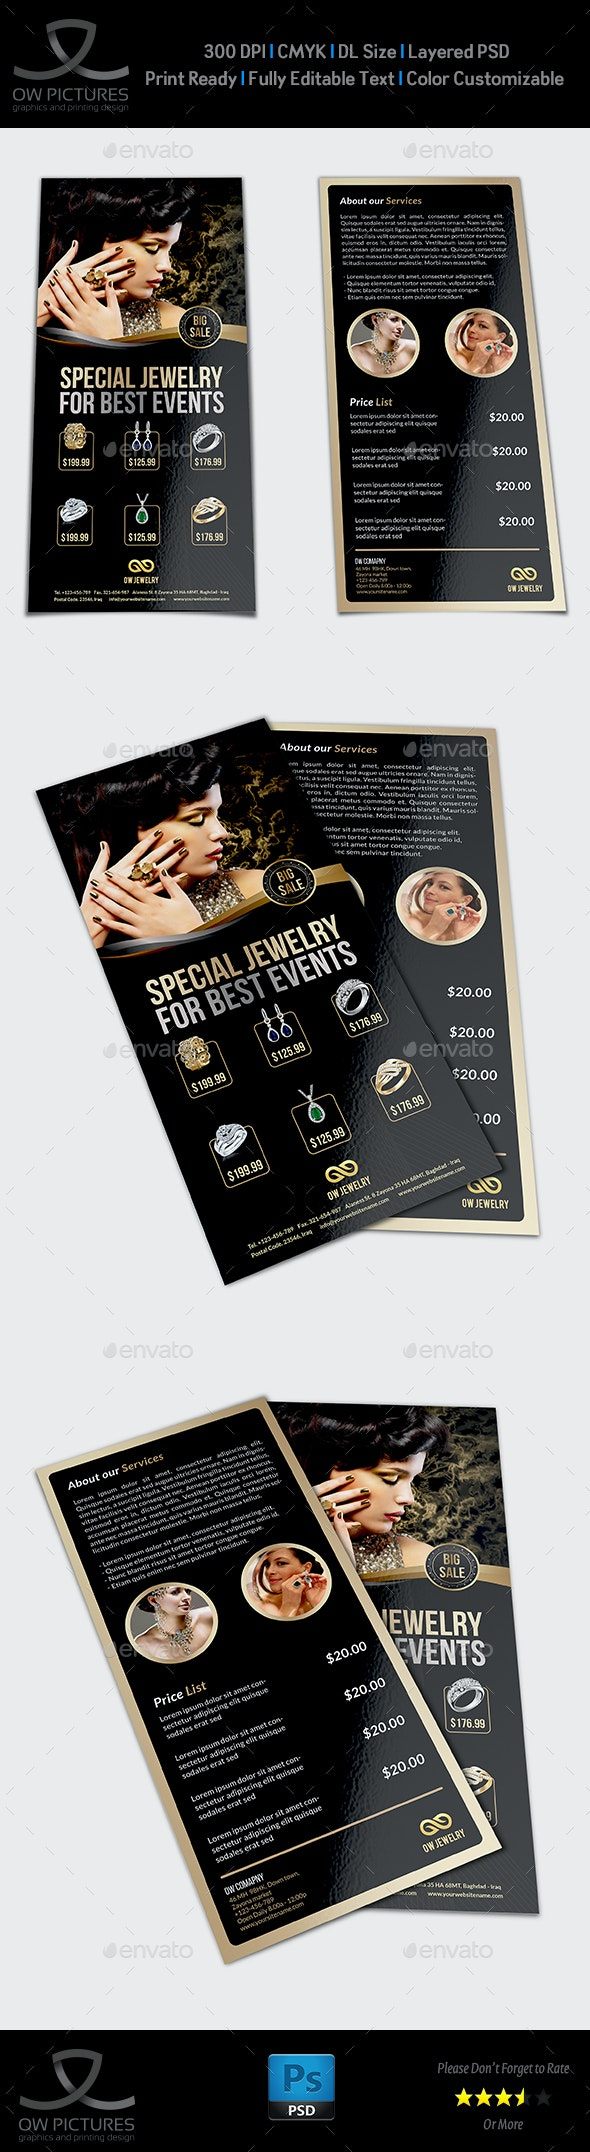 Jewelry Flyer Templates DL Size Vol2 - Commerce Flyers